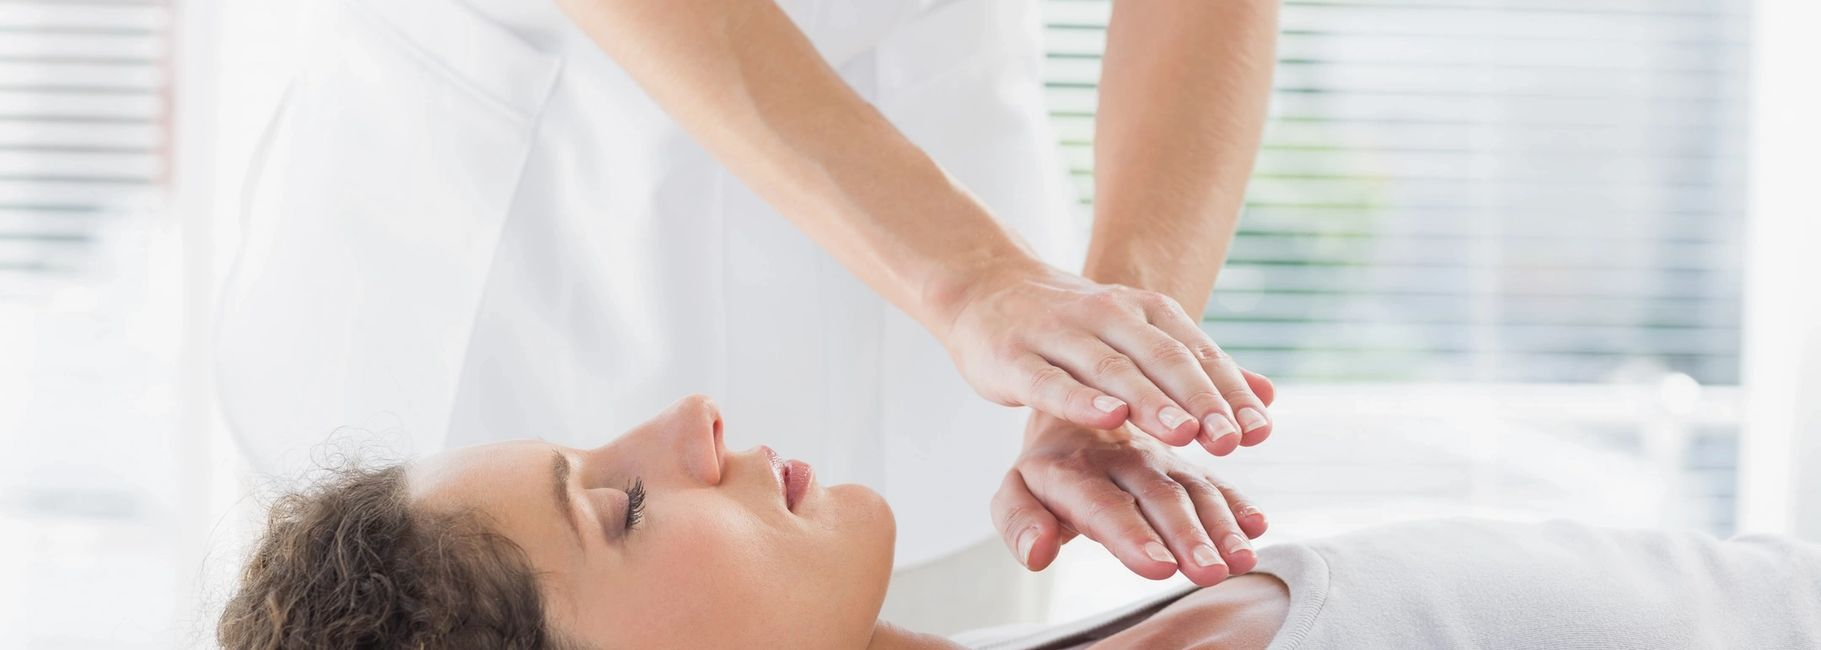 Reiki practitioner has placed their hands on the heart energy center of a client laying down.